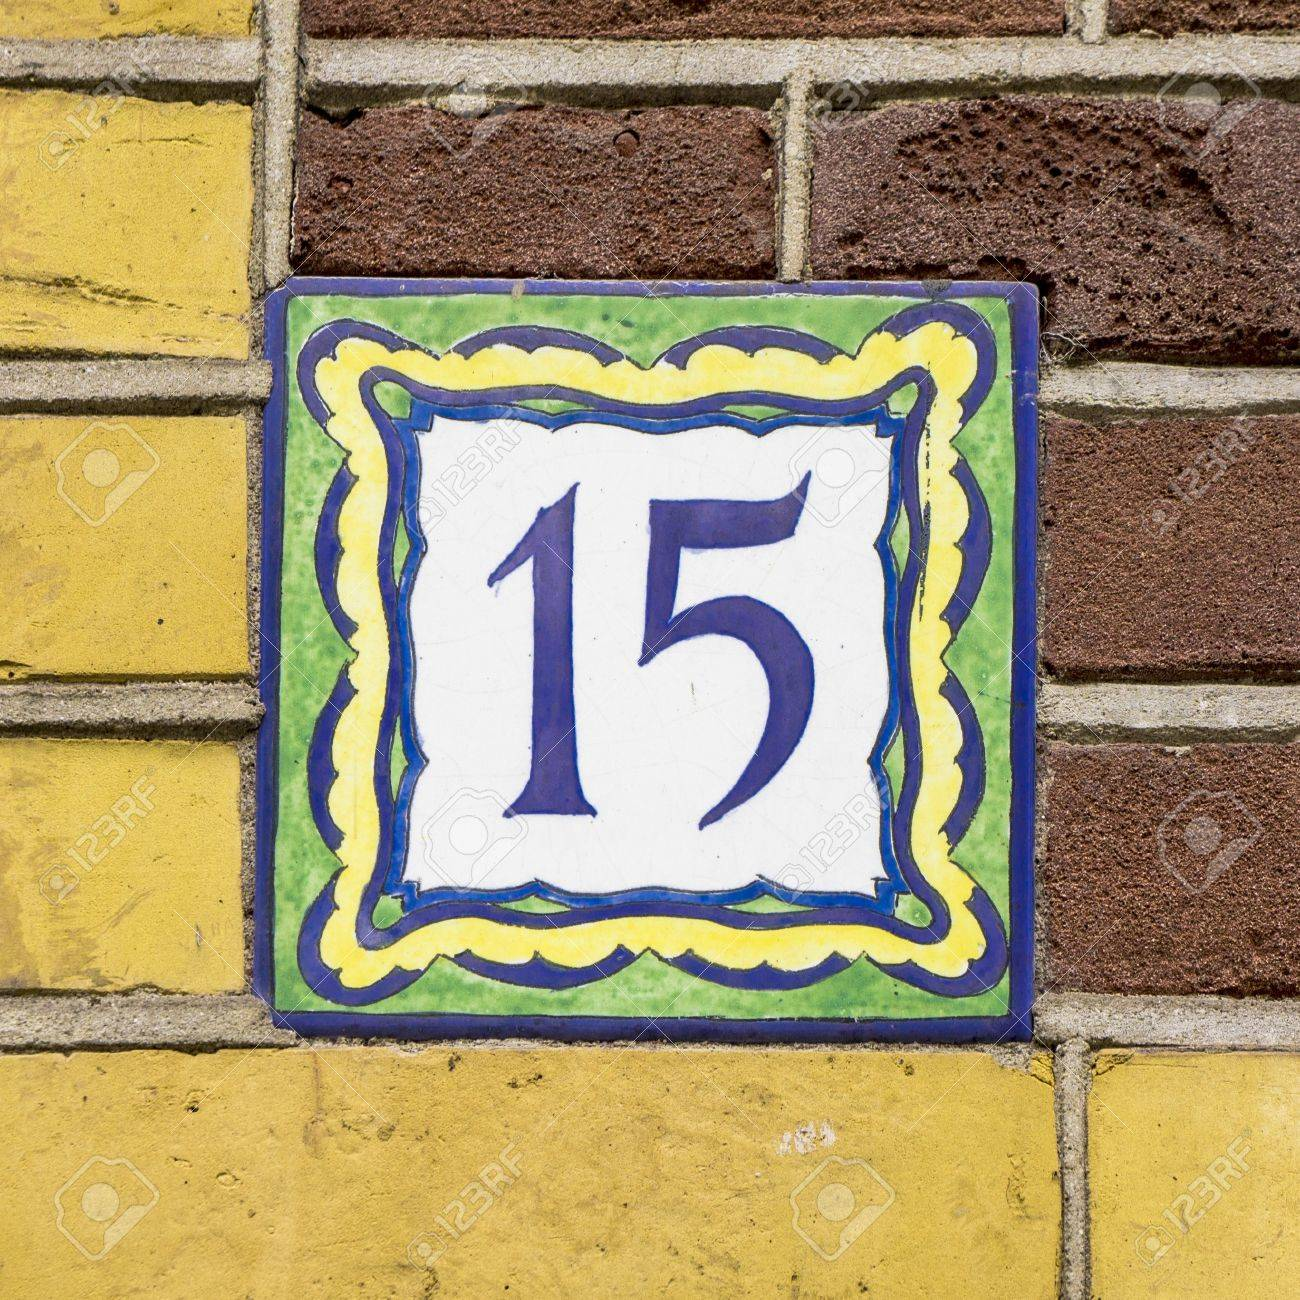 Mexican ceramic tile house numbers choice image tile flooring ceramic tile address numbers images tile flooring design ideas ceramic number tiles gallery tile flooring design dailygadgetfo Images